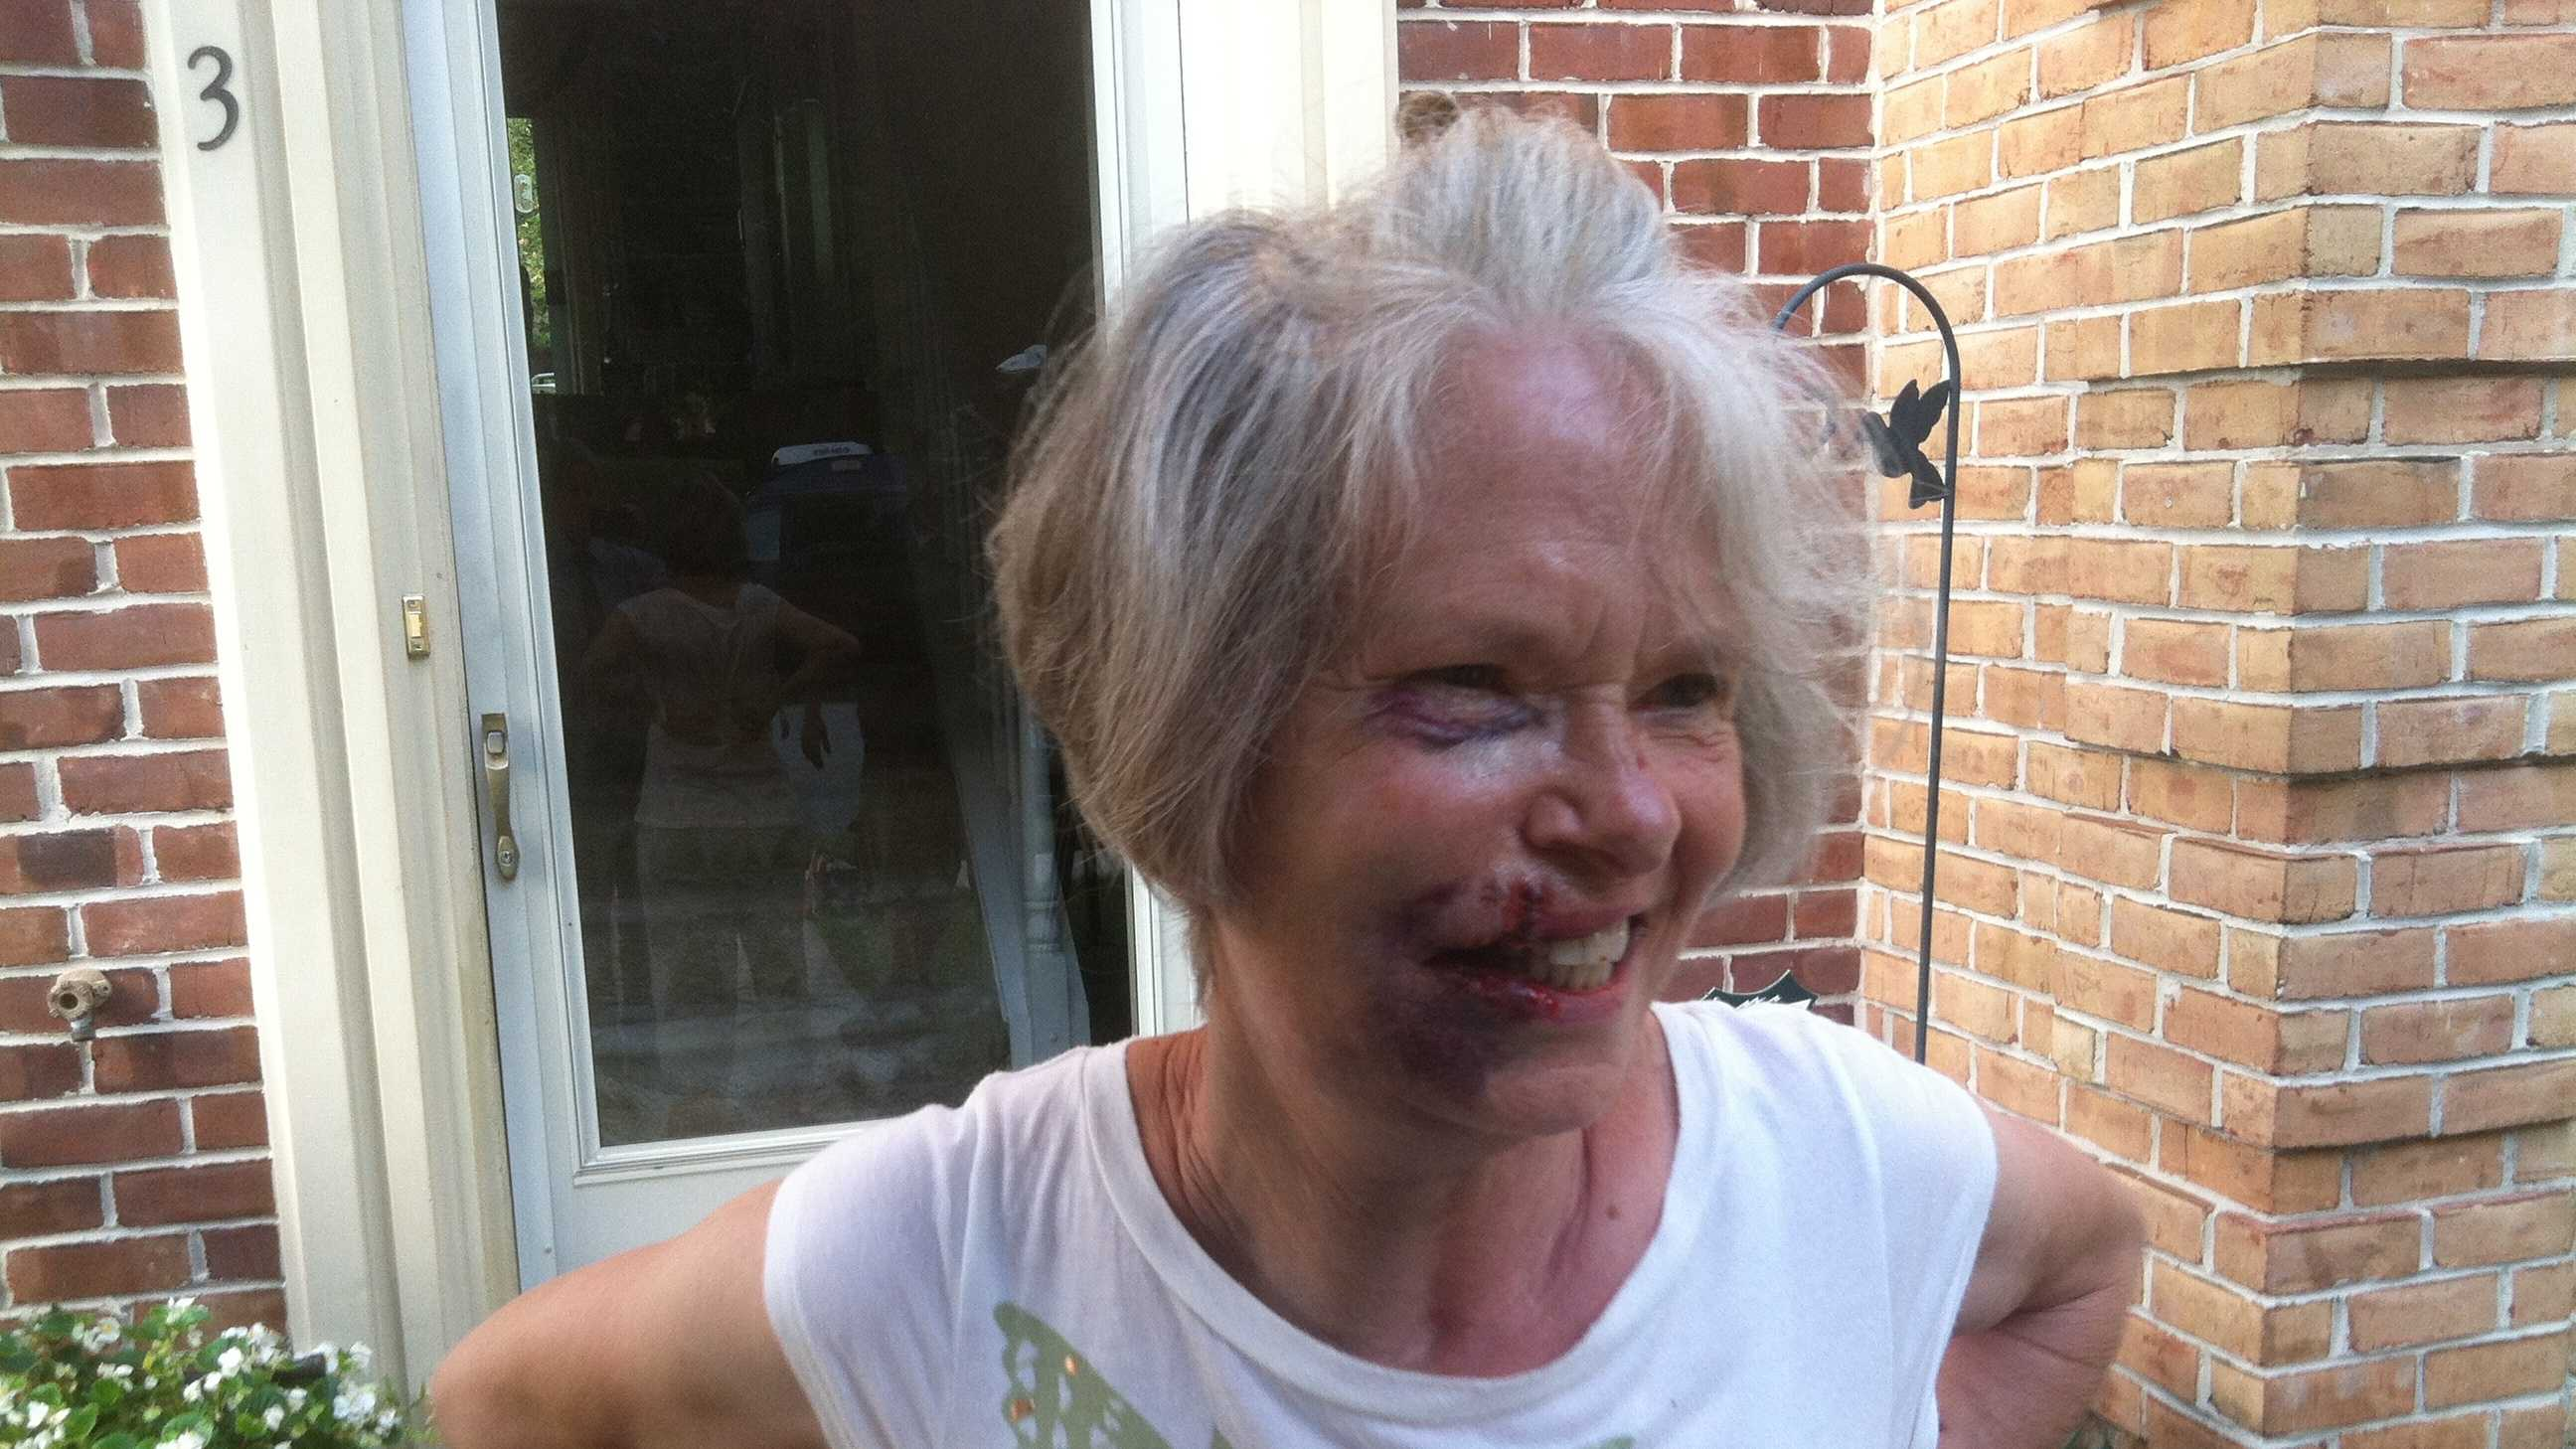 Baltimore County police said 75-year-old Cockeysville's resident Gwyn Sirota is recovering from a beating during a robbery inside her townhouse Monday morning.